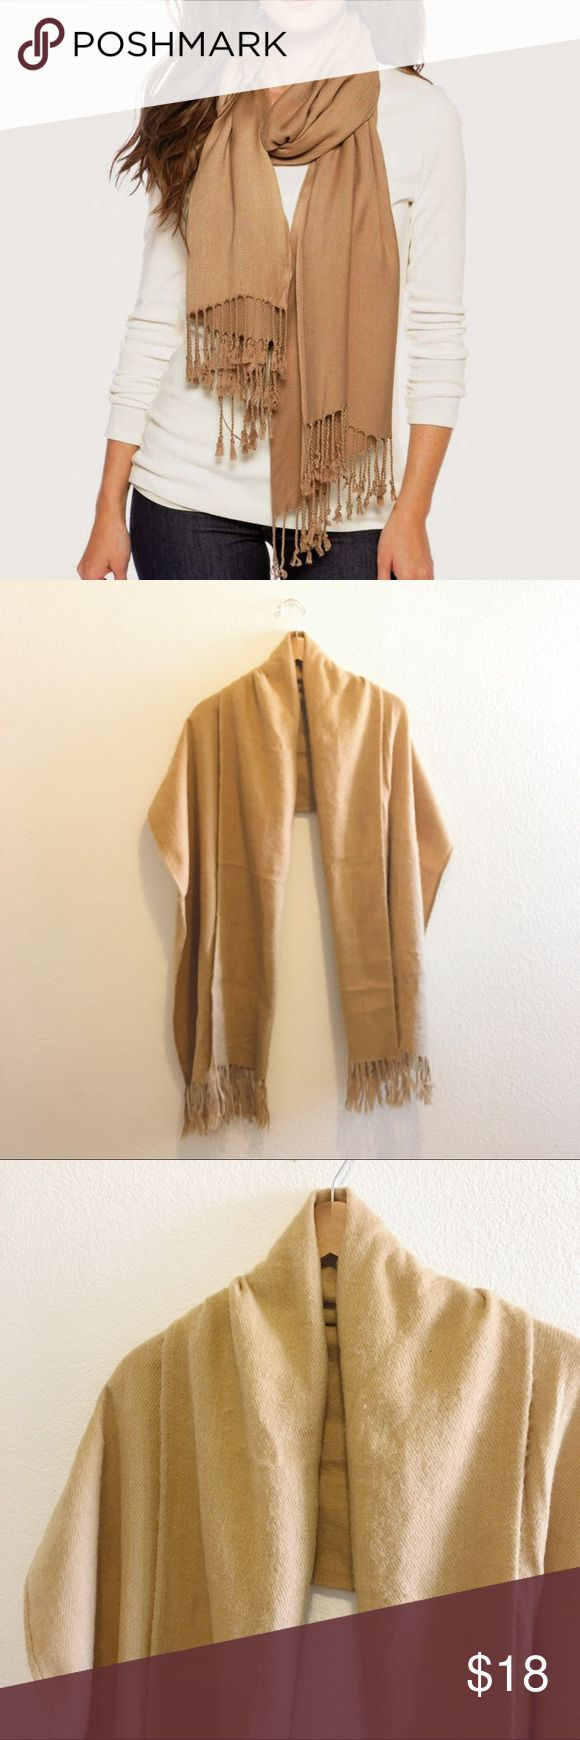 Chic Camel Scarf Chic and warm camel scarf. In okay used condition. Some fringe is not twisted, see last picture. But super cute when wear with a jacket. 💕 Accessories Scarves & Wraps